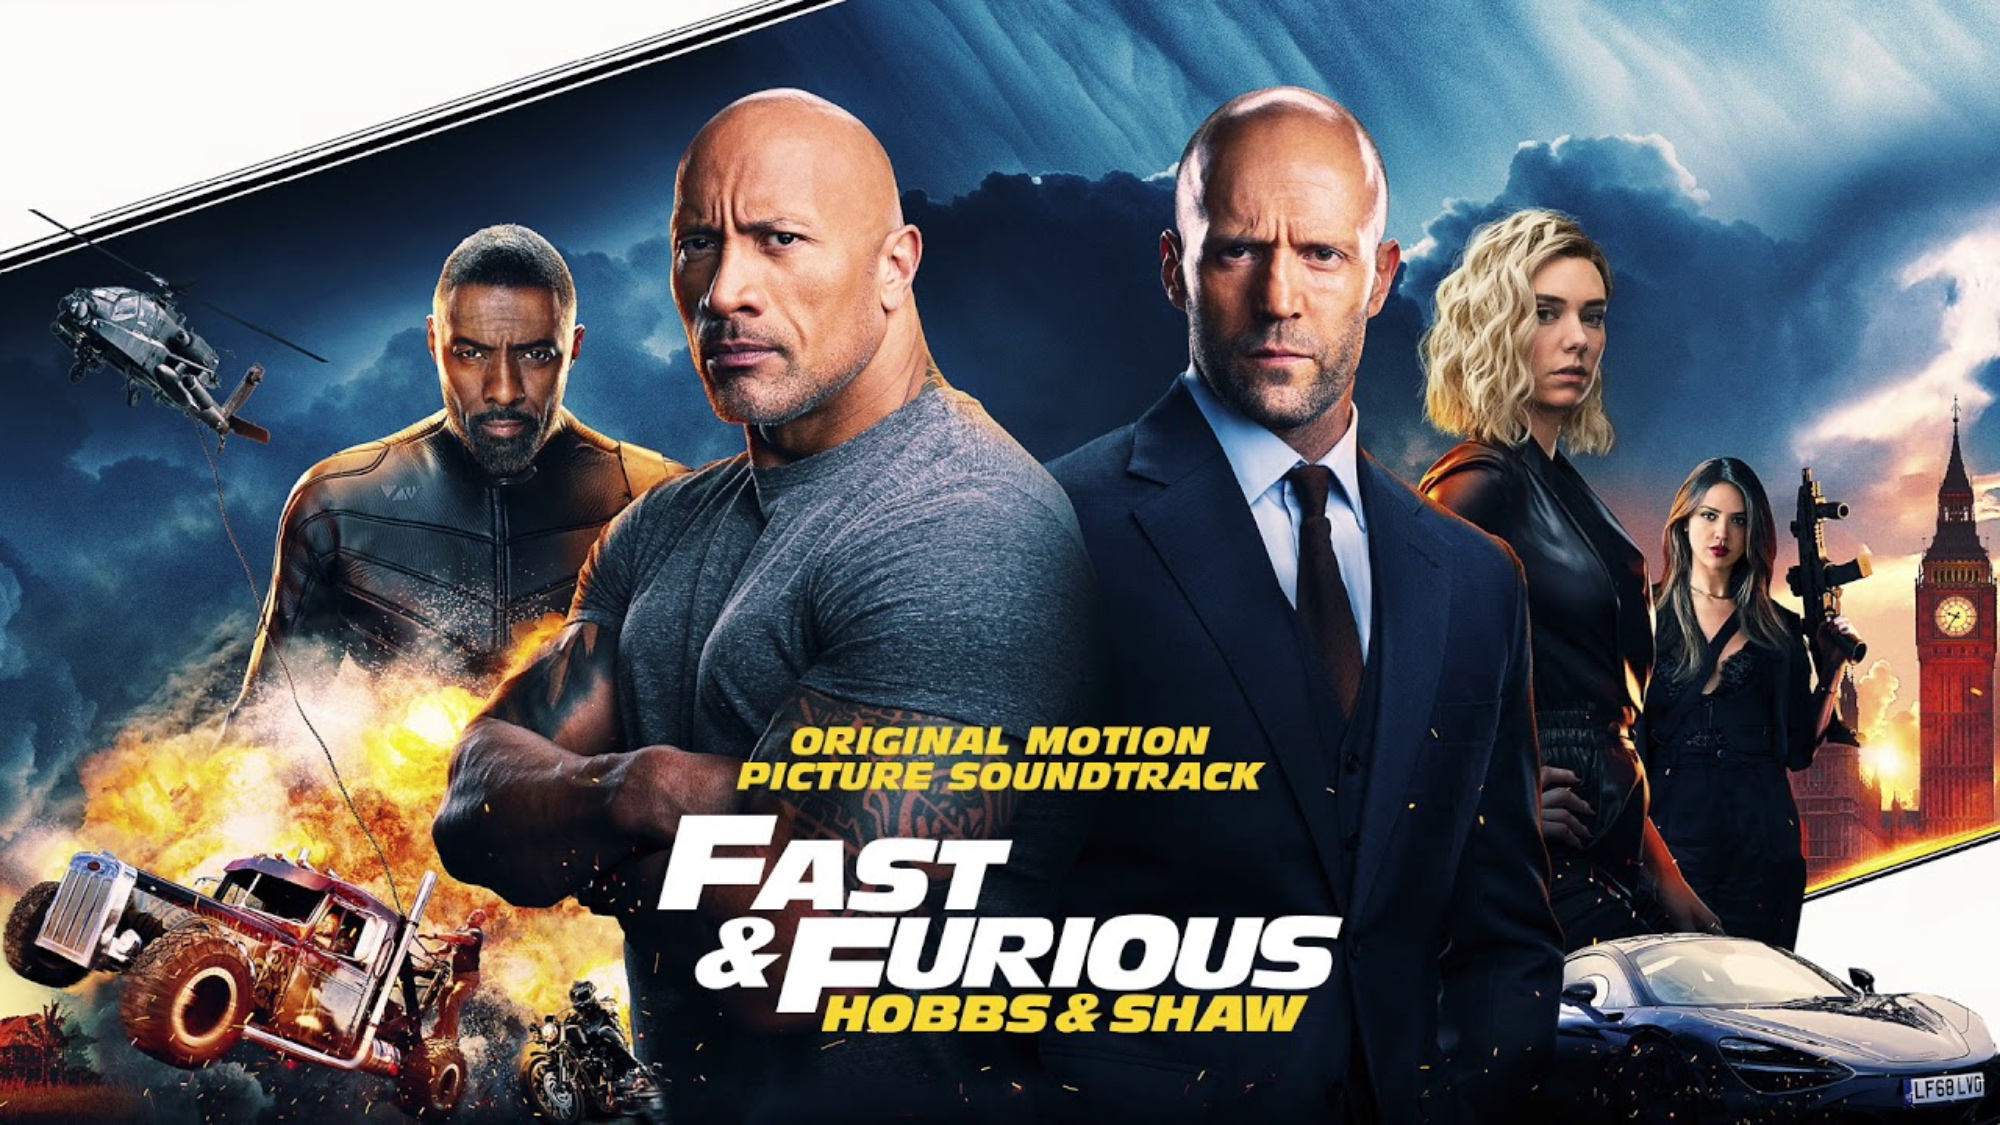 A promo for Fast and Furious Presents Hobbs and Shaw with dark clouds, guns, helicopters, cars, trucks, and explosions.